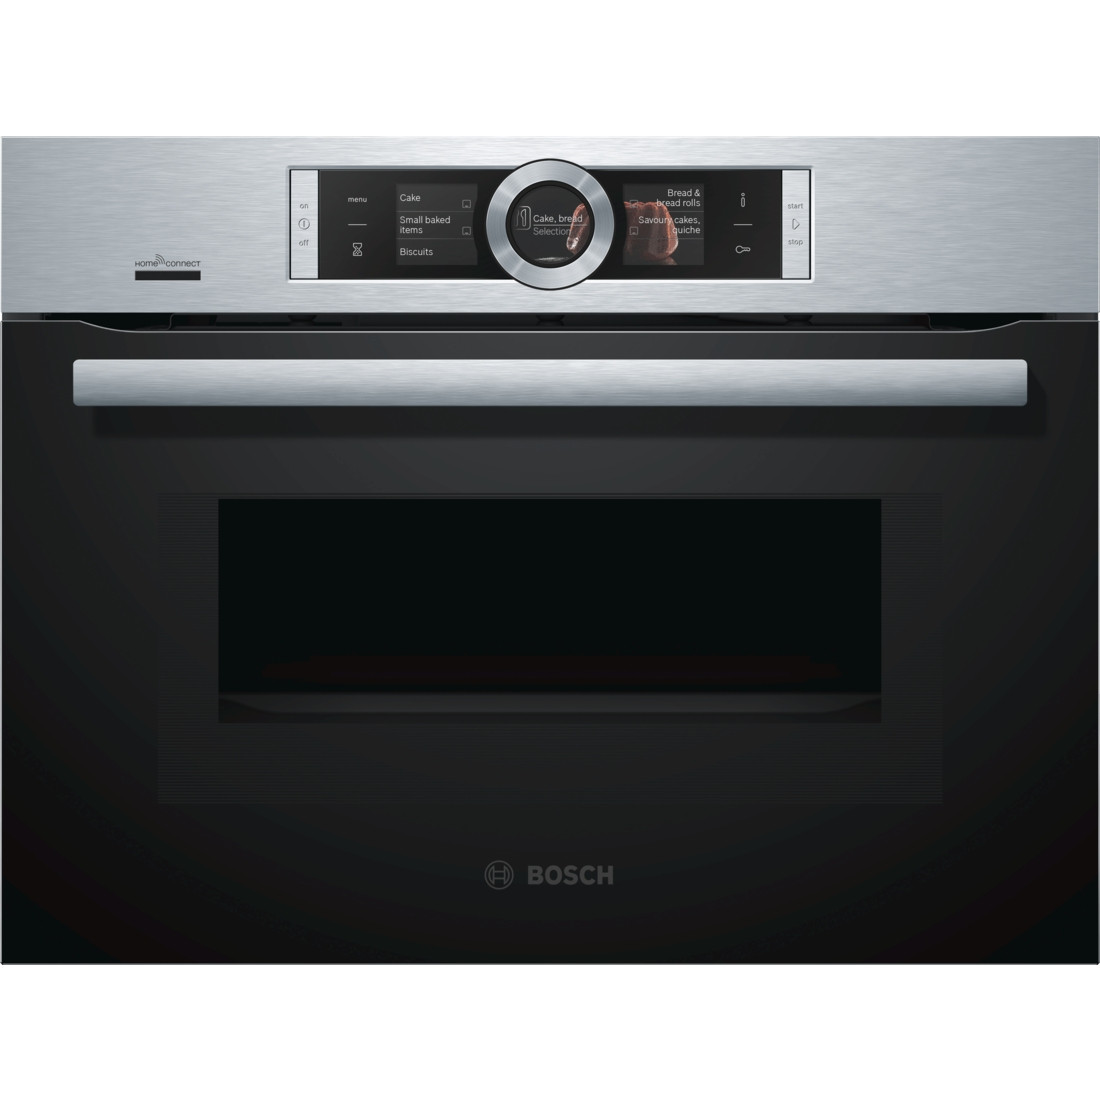 Bosch Serie 8 CMG676BS6B Pyrolytic Compact Oven with Microwave